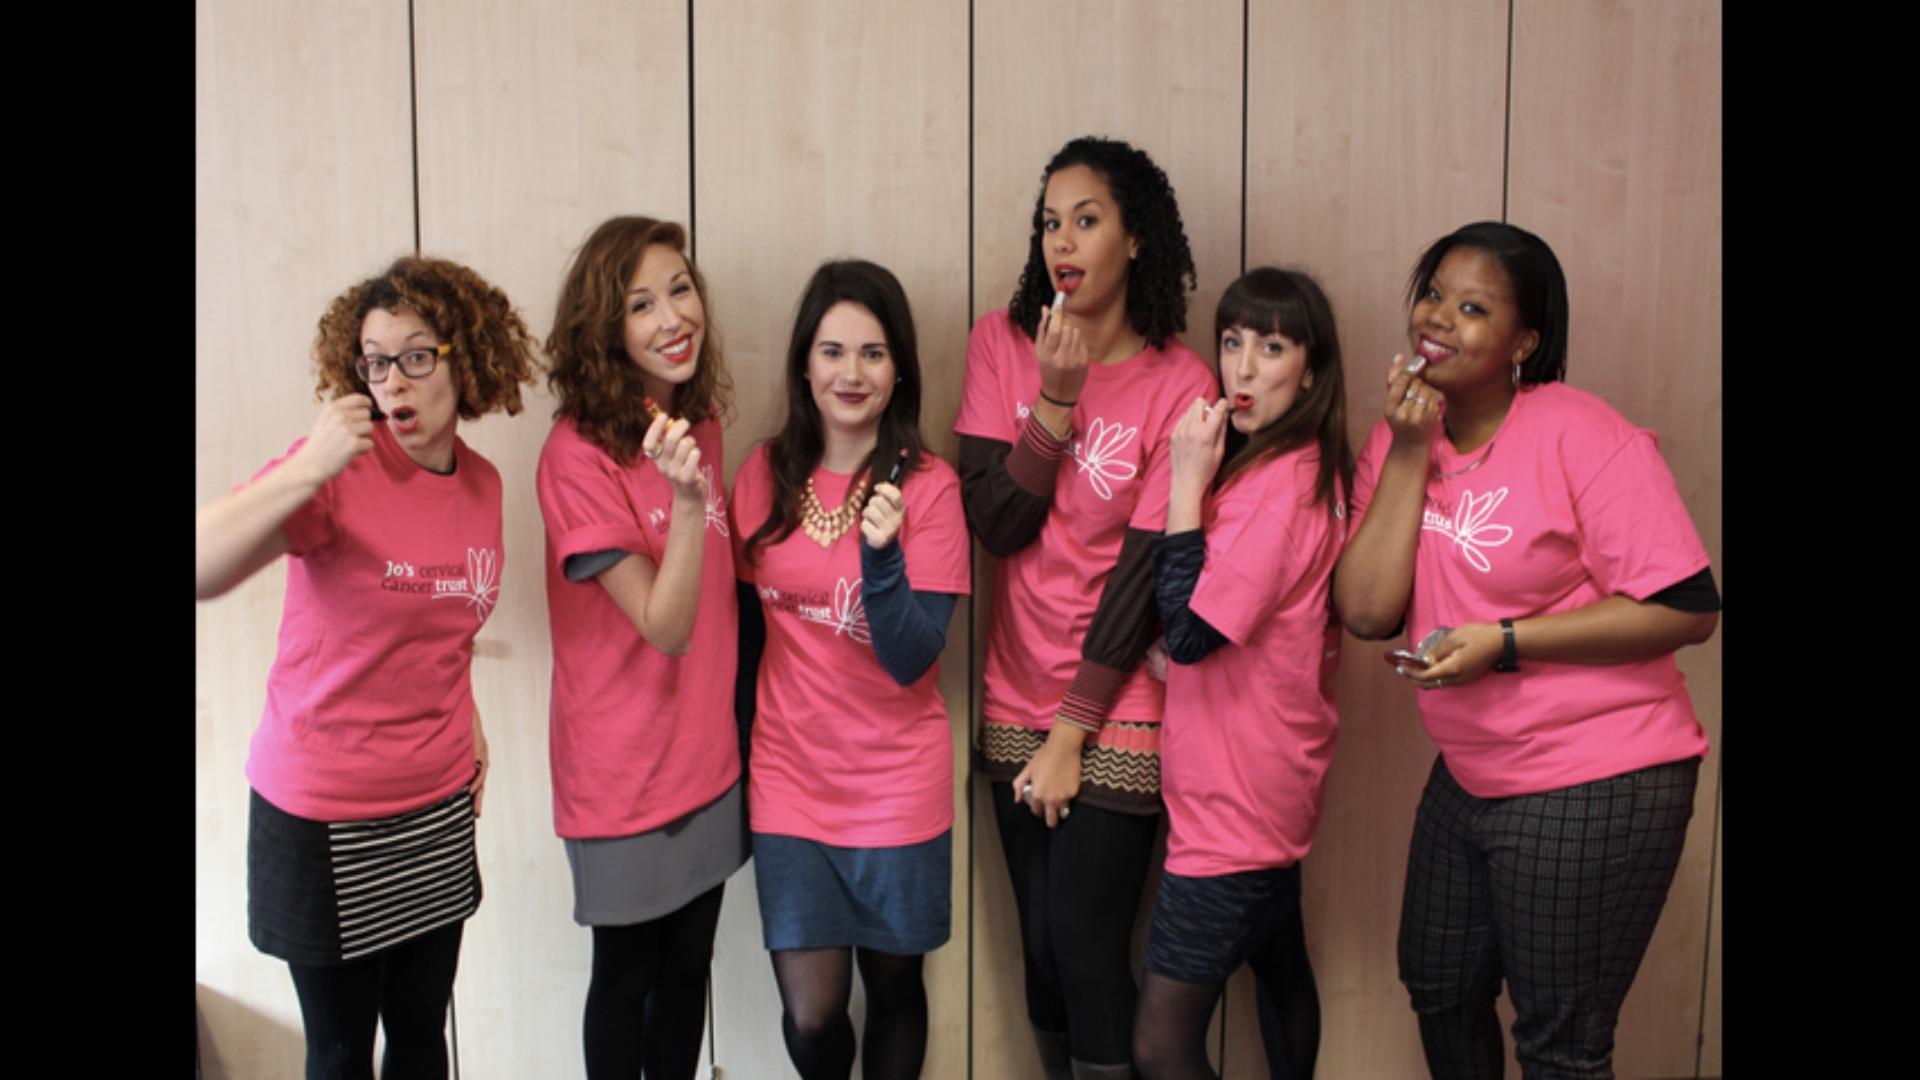 Jo's Trust is encouraging all women to SmearForSmear